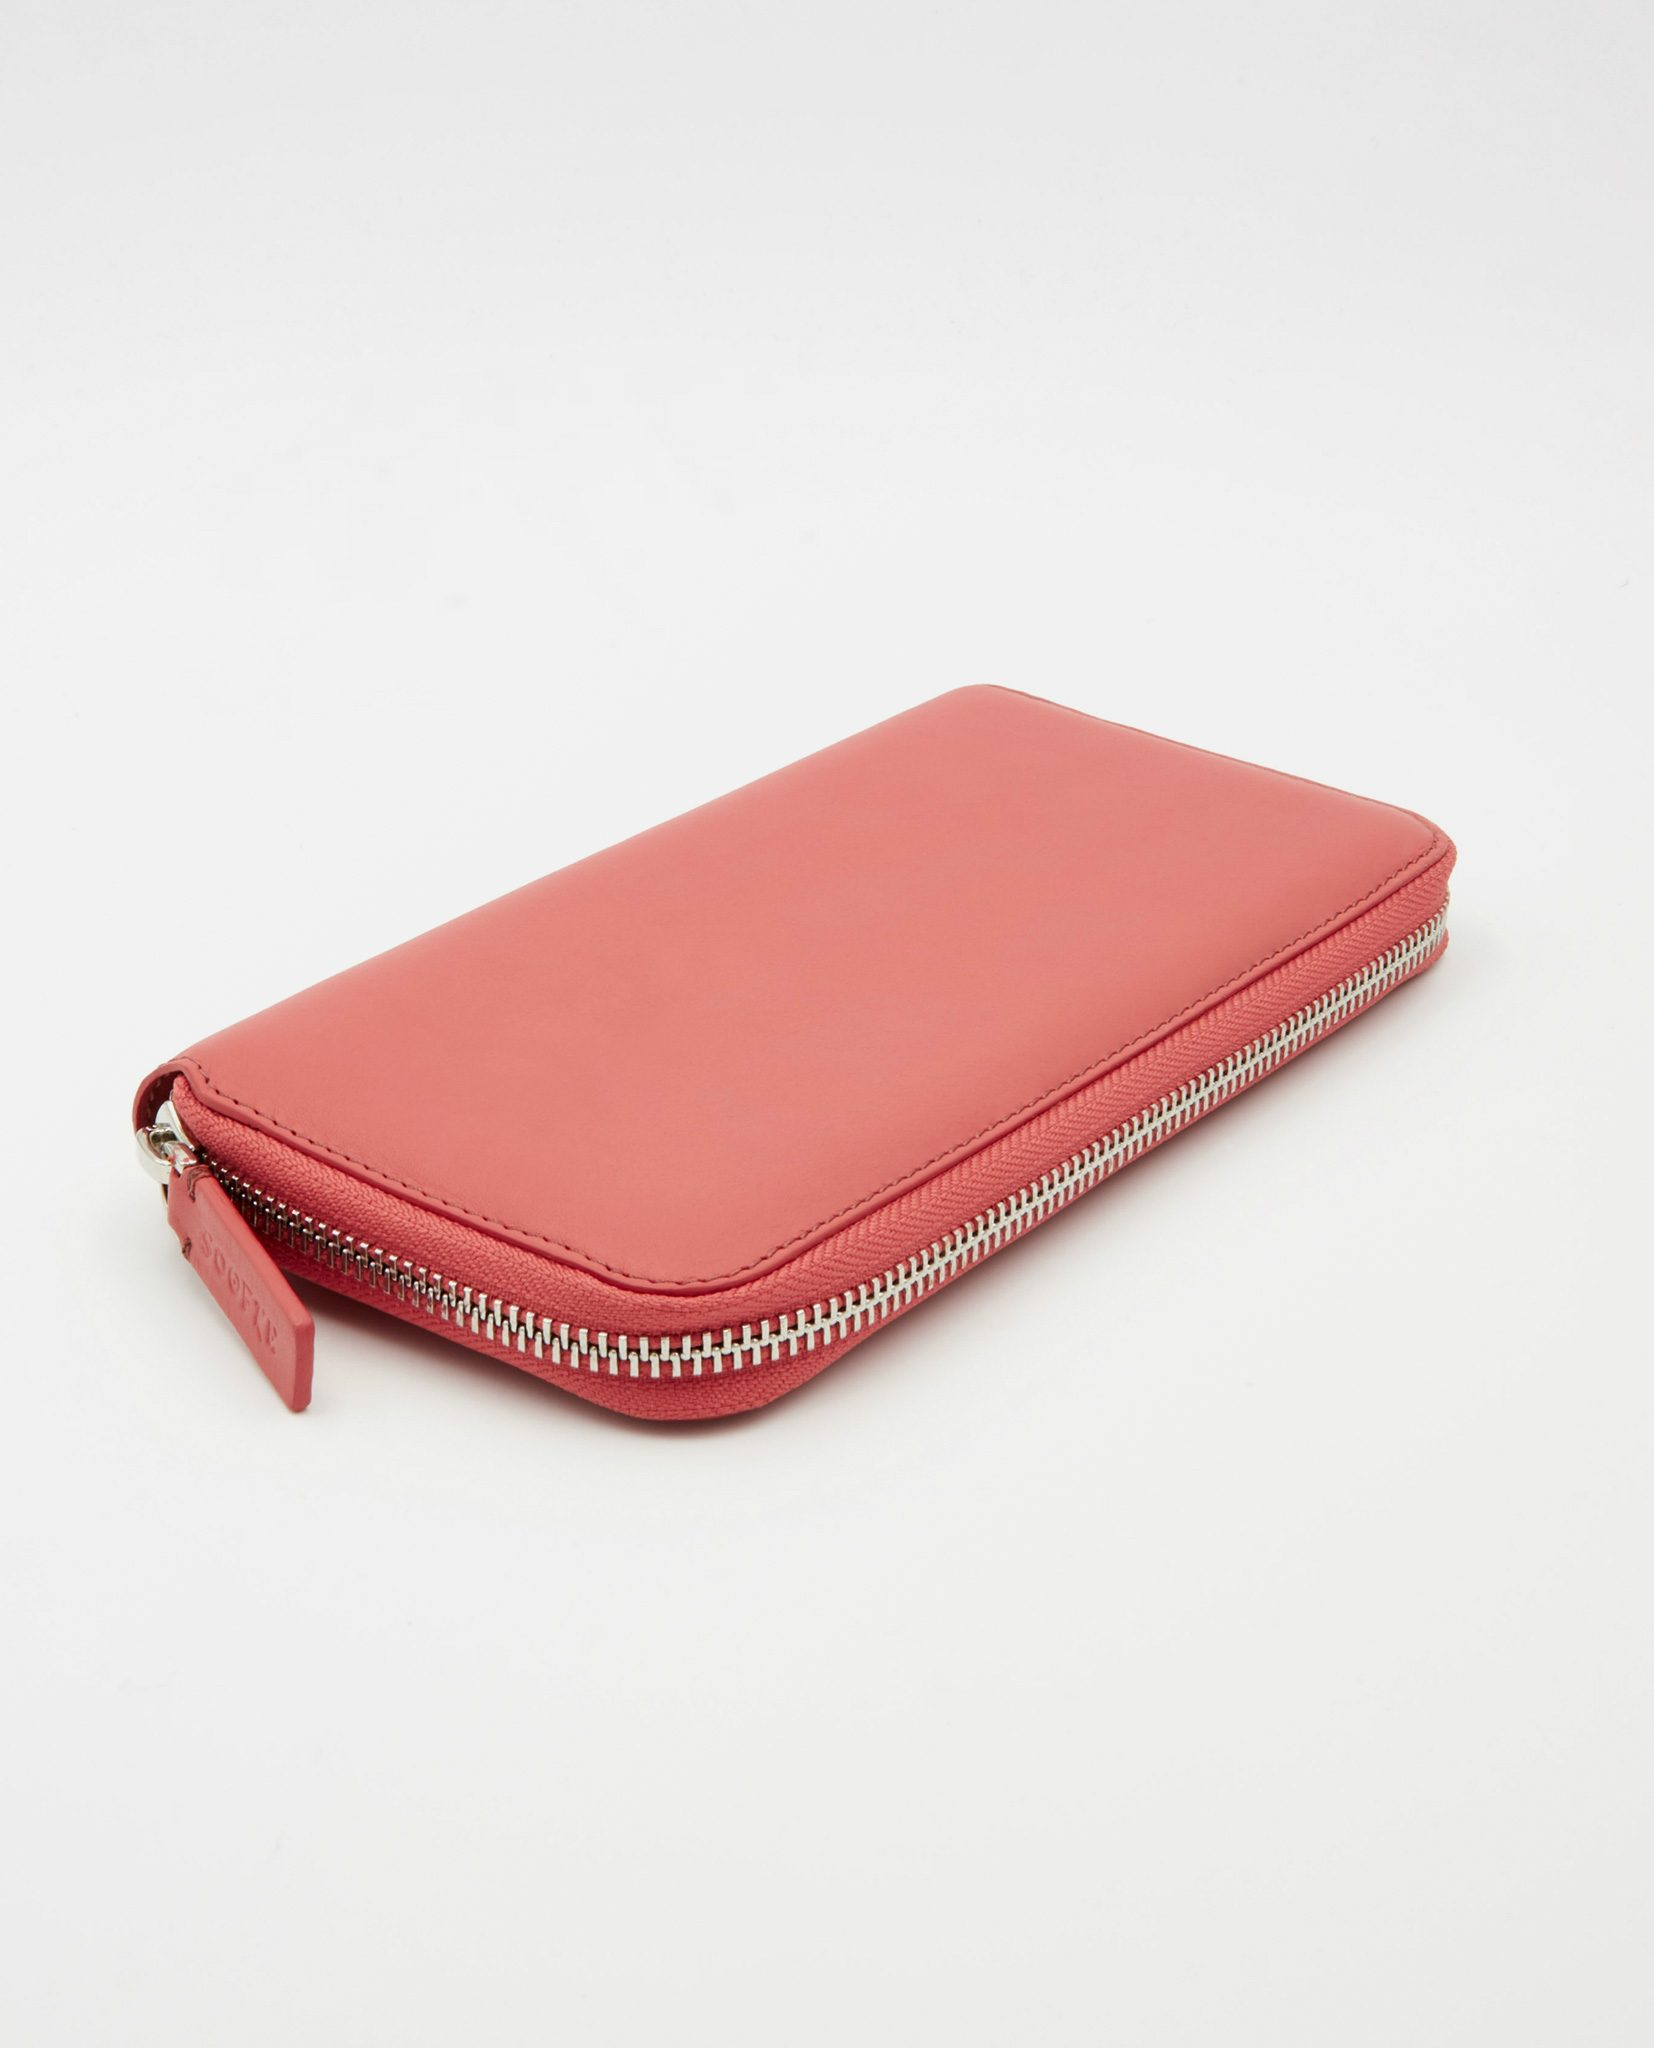 Soofre Women's Zip Wallet Smooth Leather Coral-Blush